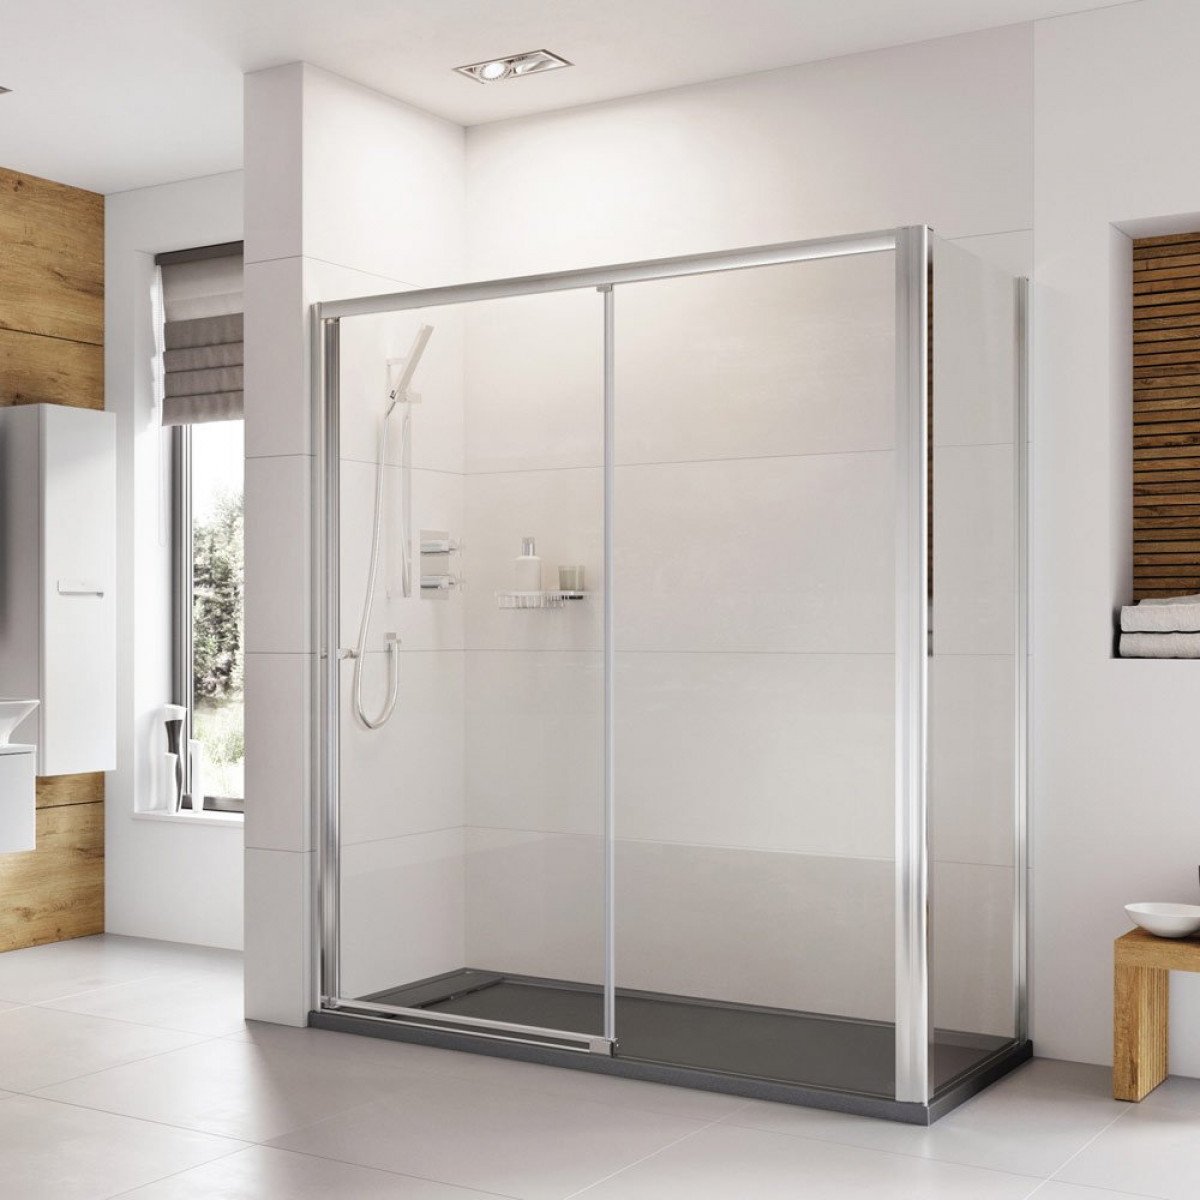 Roman Haven 1200mm Level Access Left Hand Sliding Shower